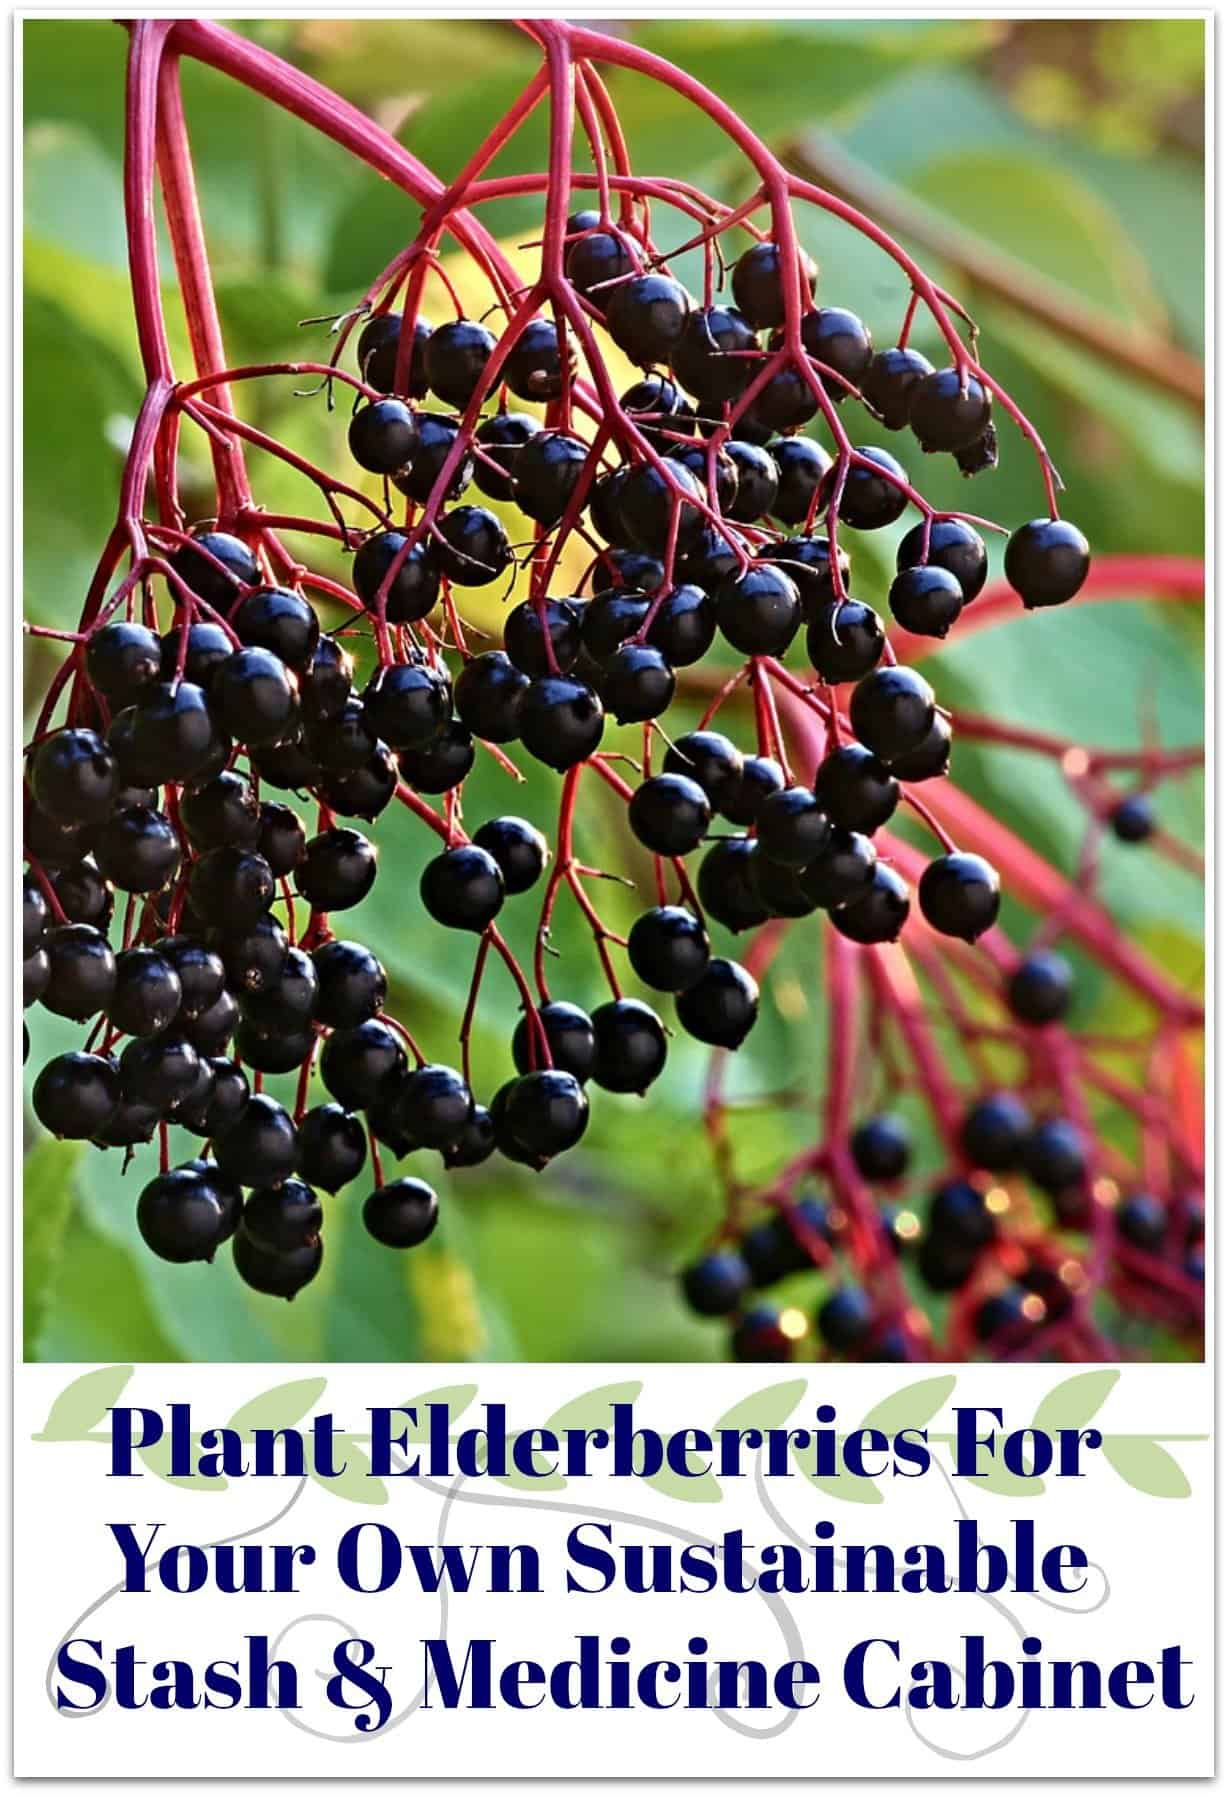 Plant Elderberries For Your Own Sustainable Stash & Medicine Cabinet. Beautiful berries hanging